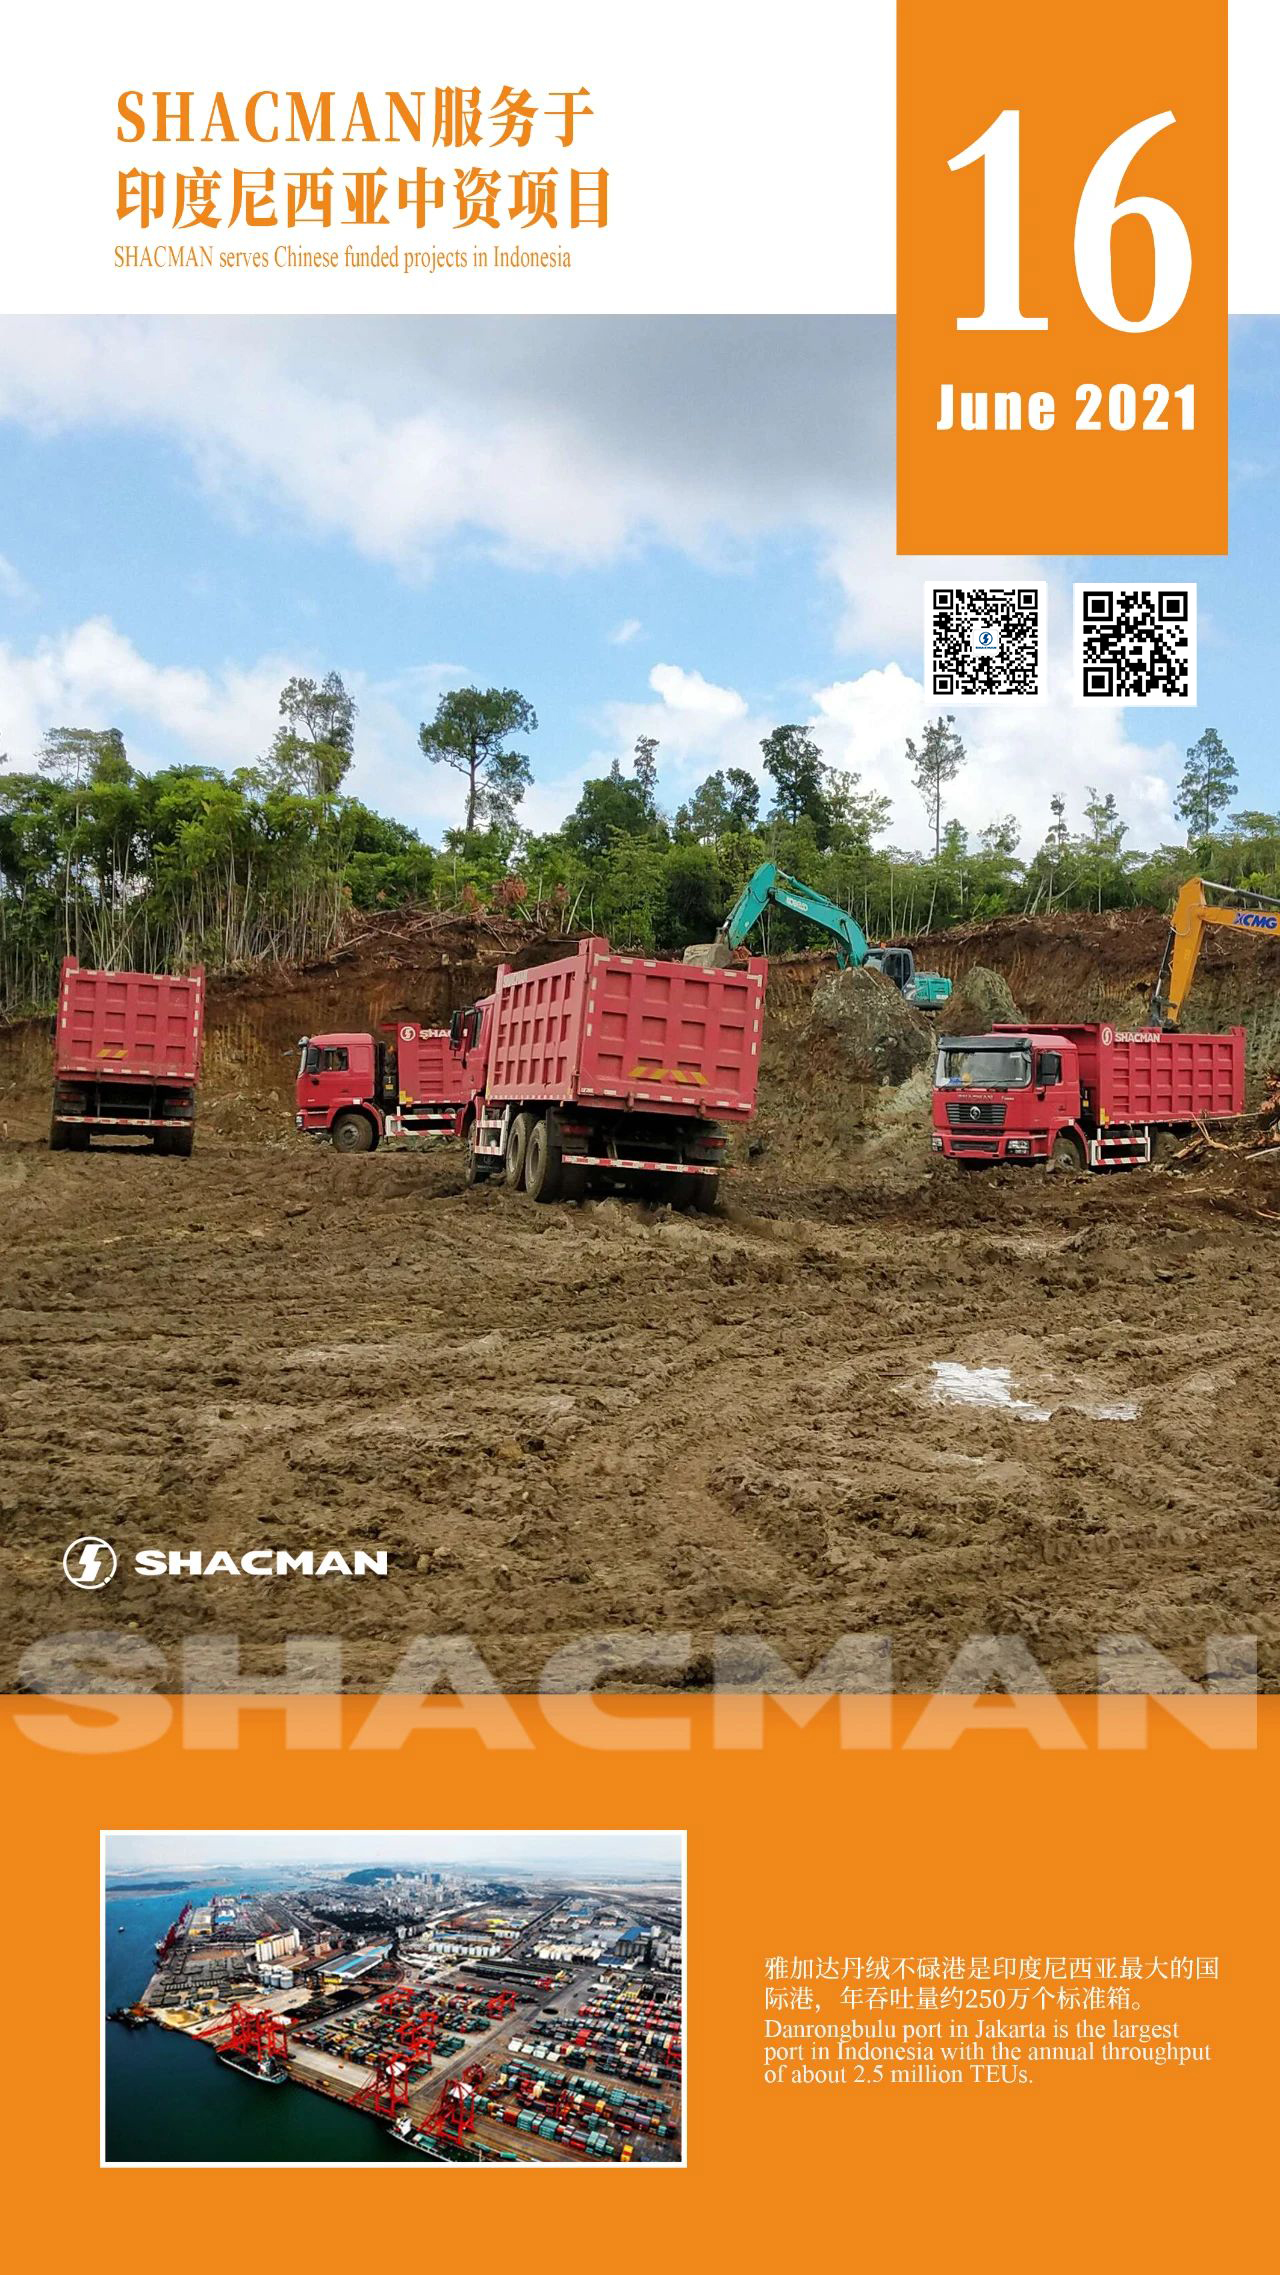 SHACMAN Serves Chinese Funded Projects In Indonesia